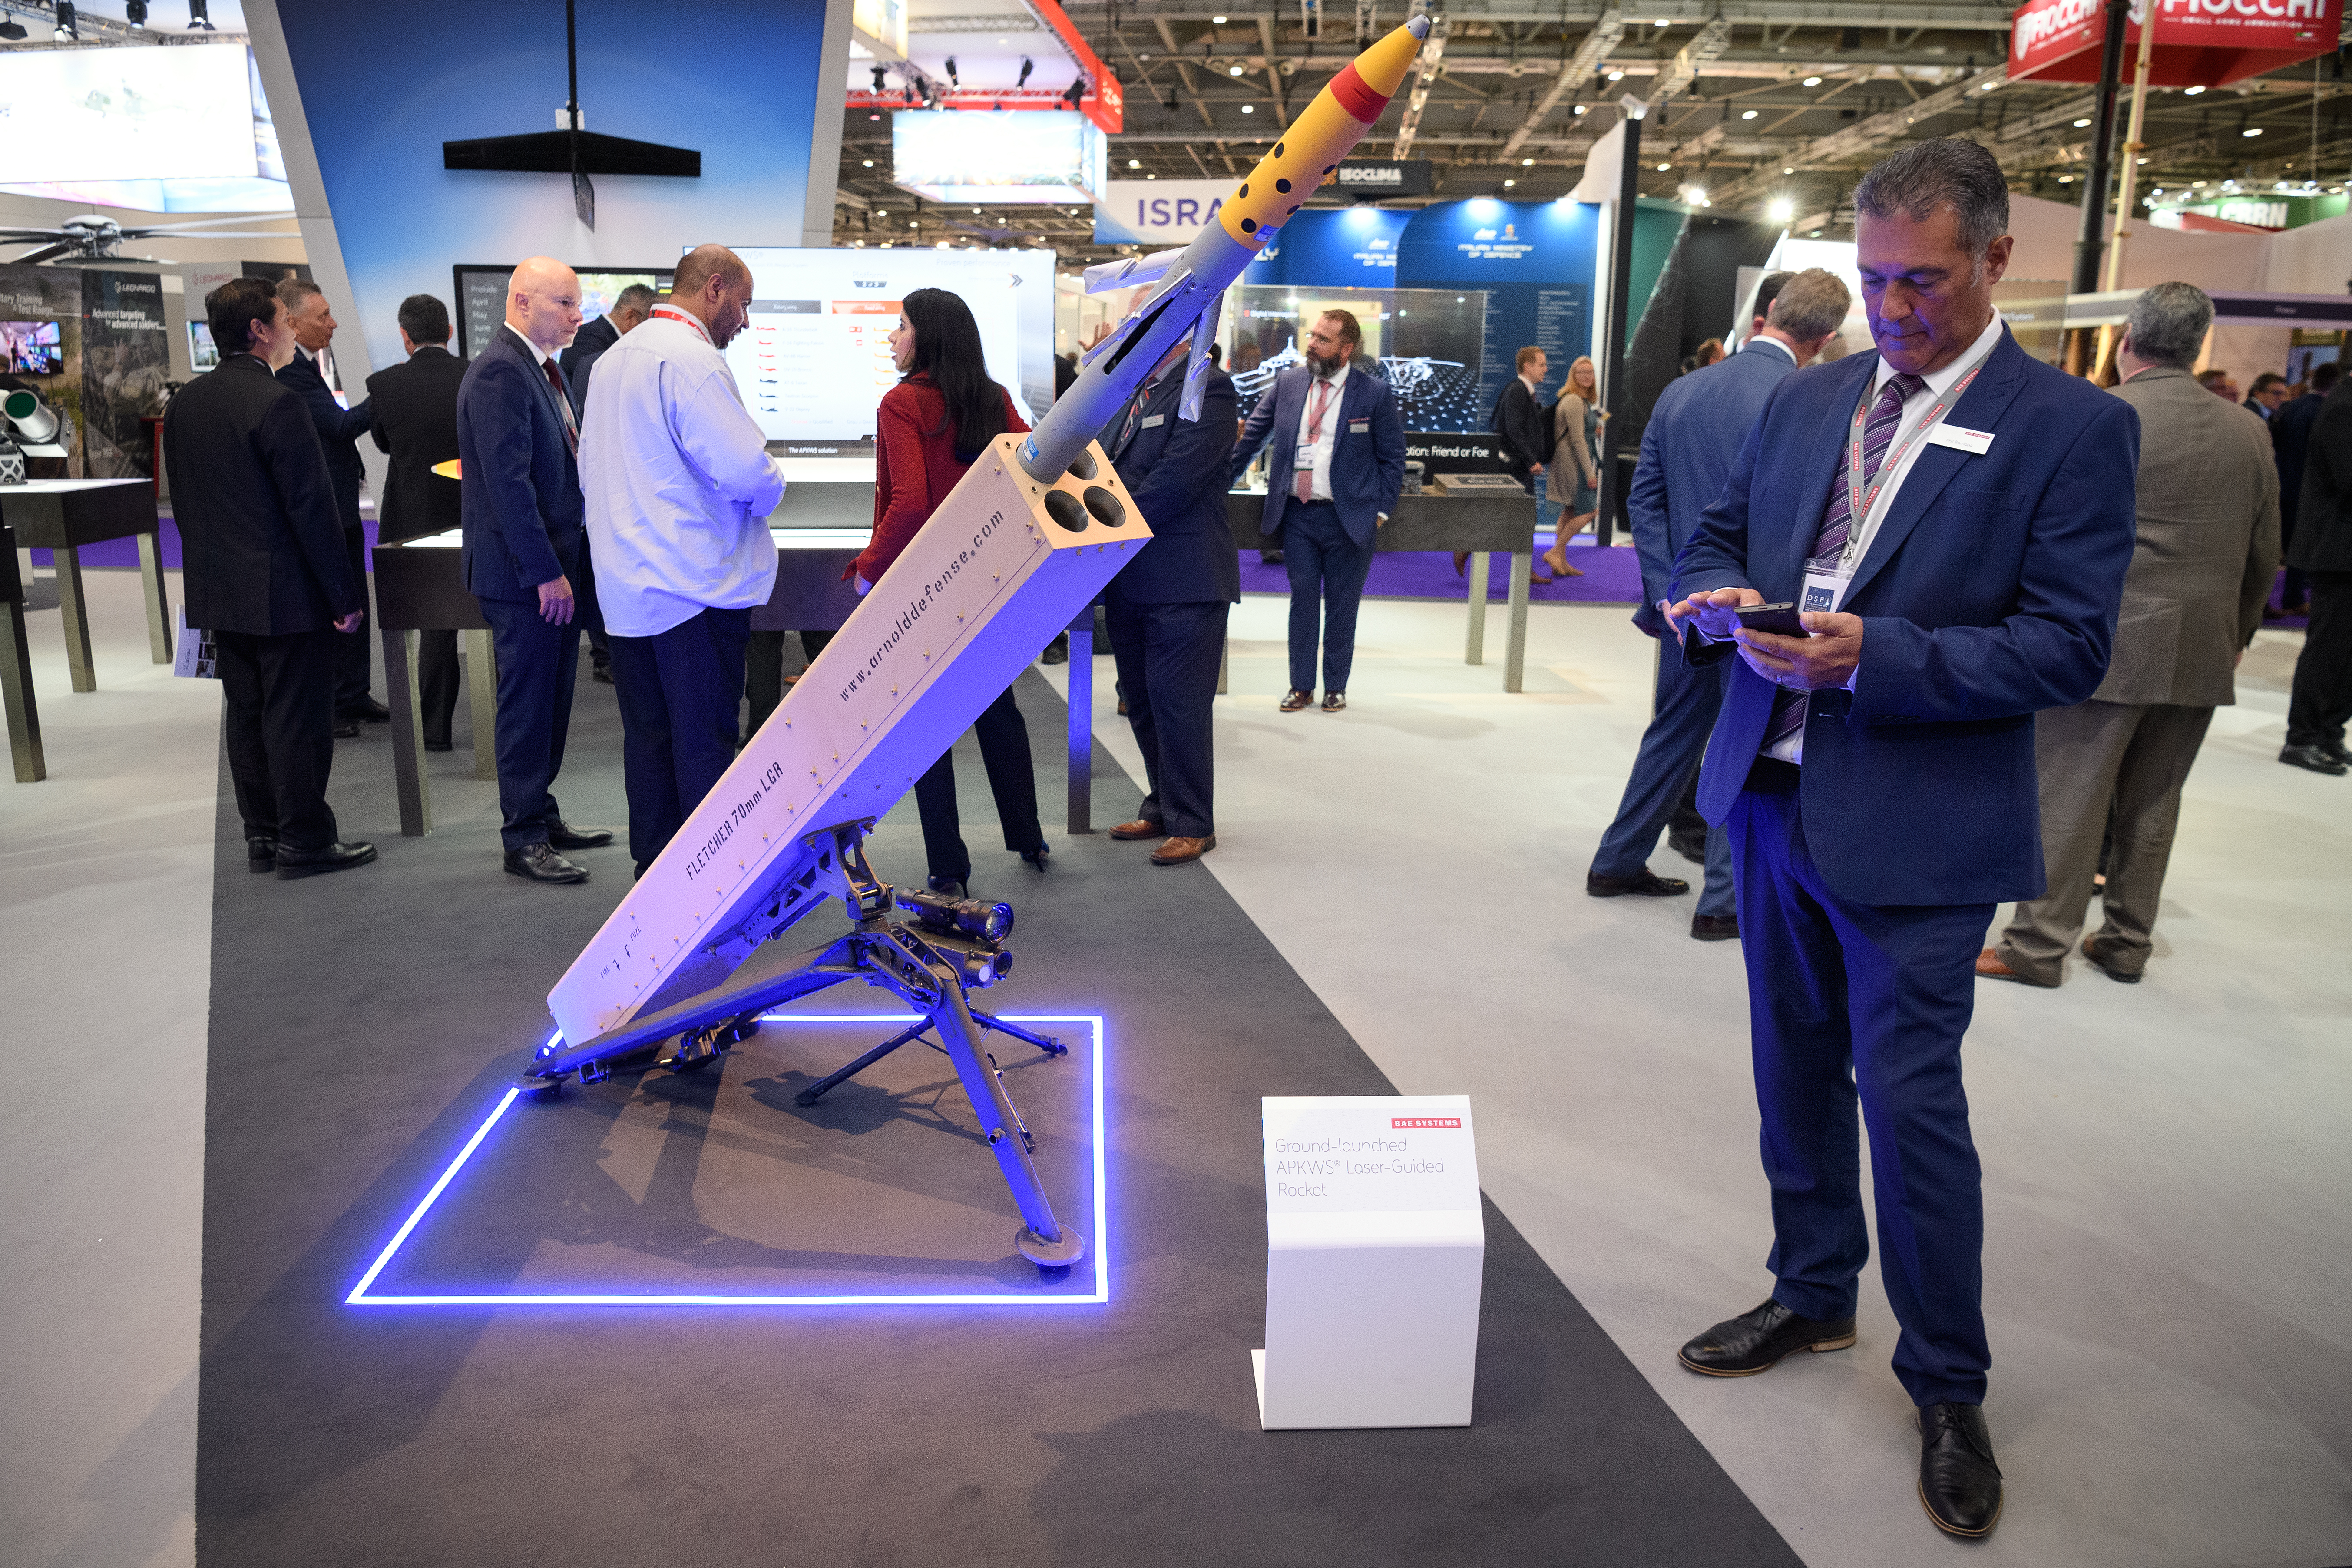 A man checks his phone as he stands next to the ground-based APKWS laser-guided rocket by BAE Systems on the second day of DSEI. (Leon Neal/Getty Images)